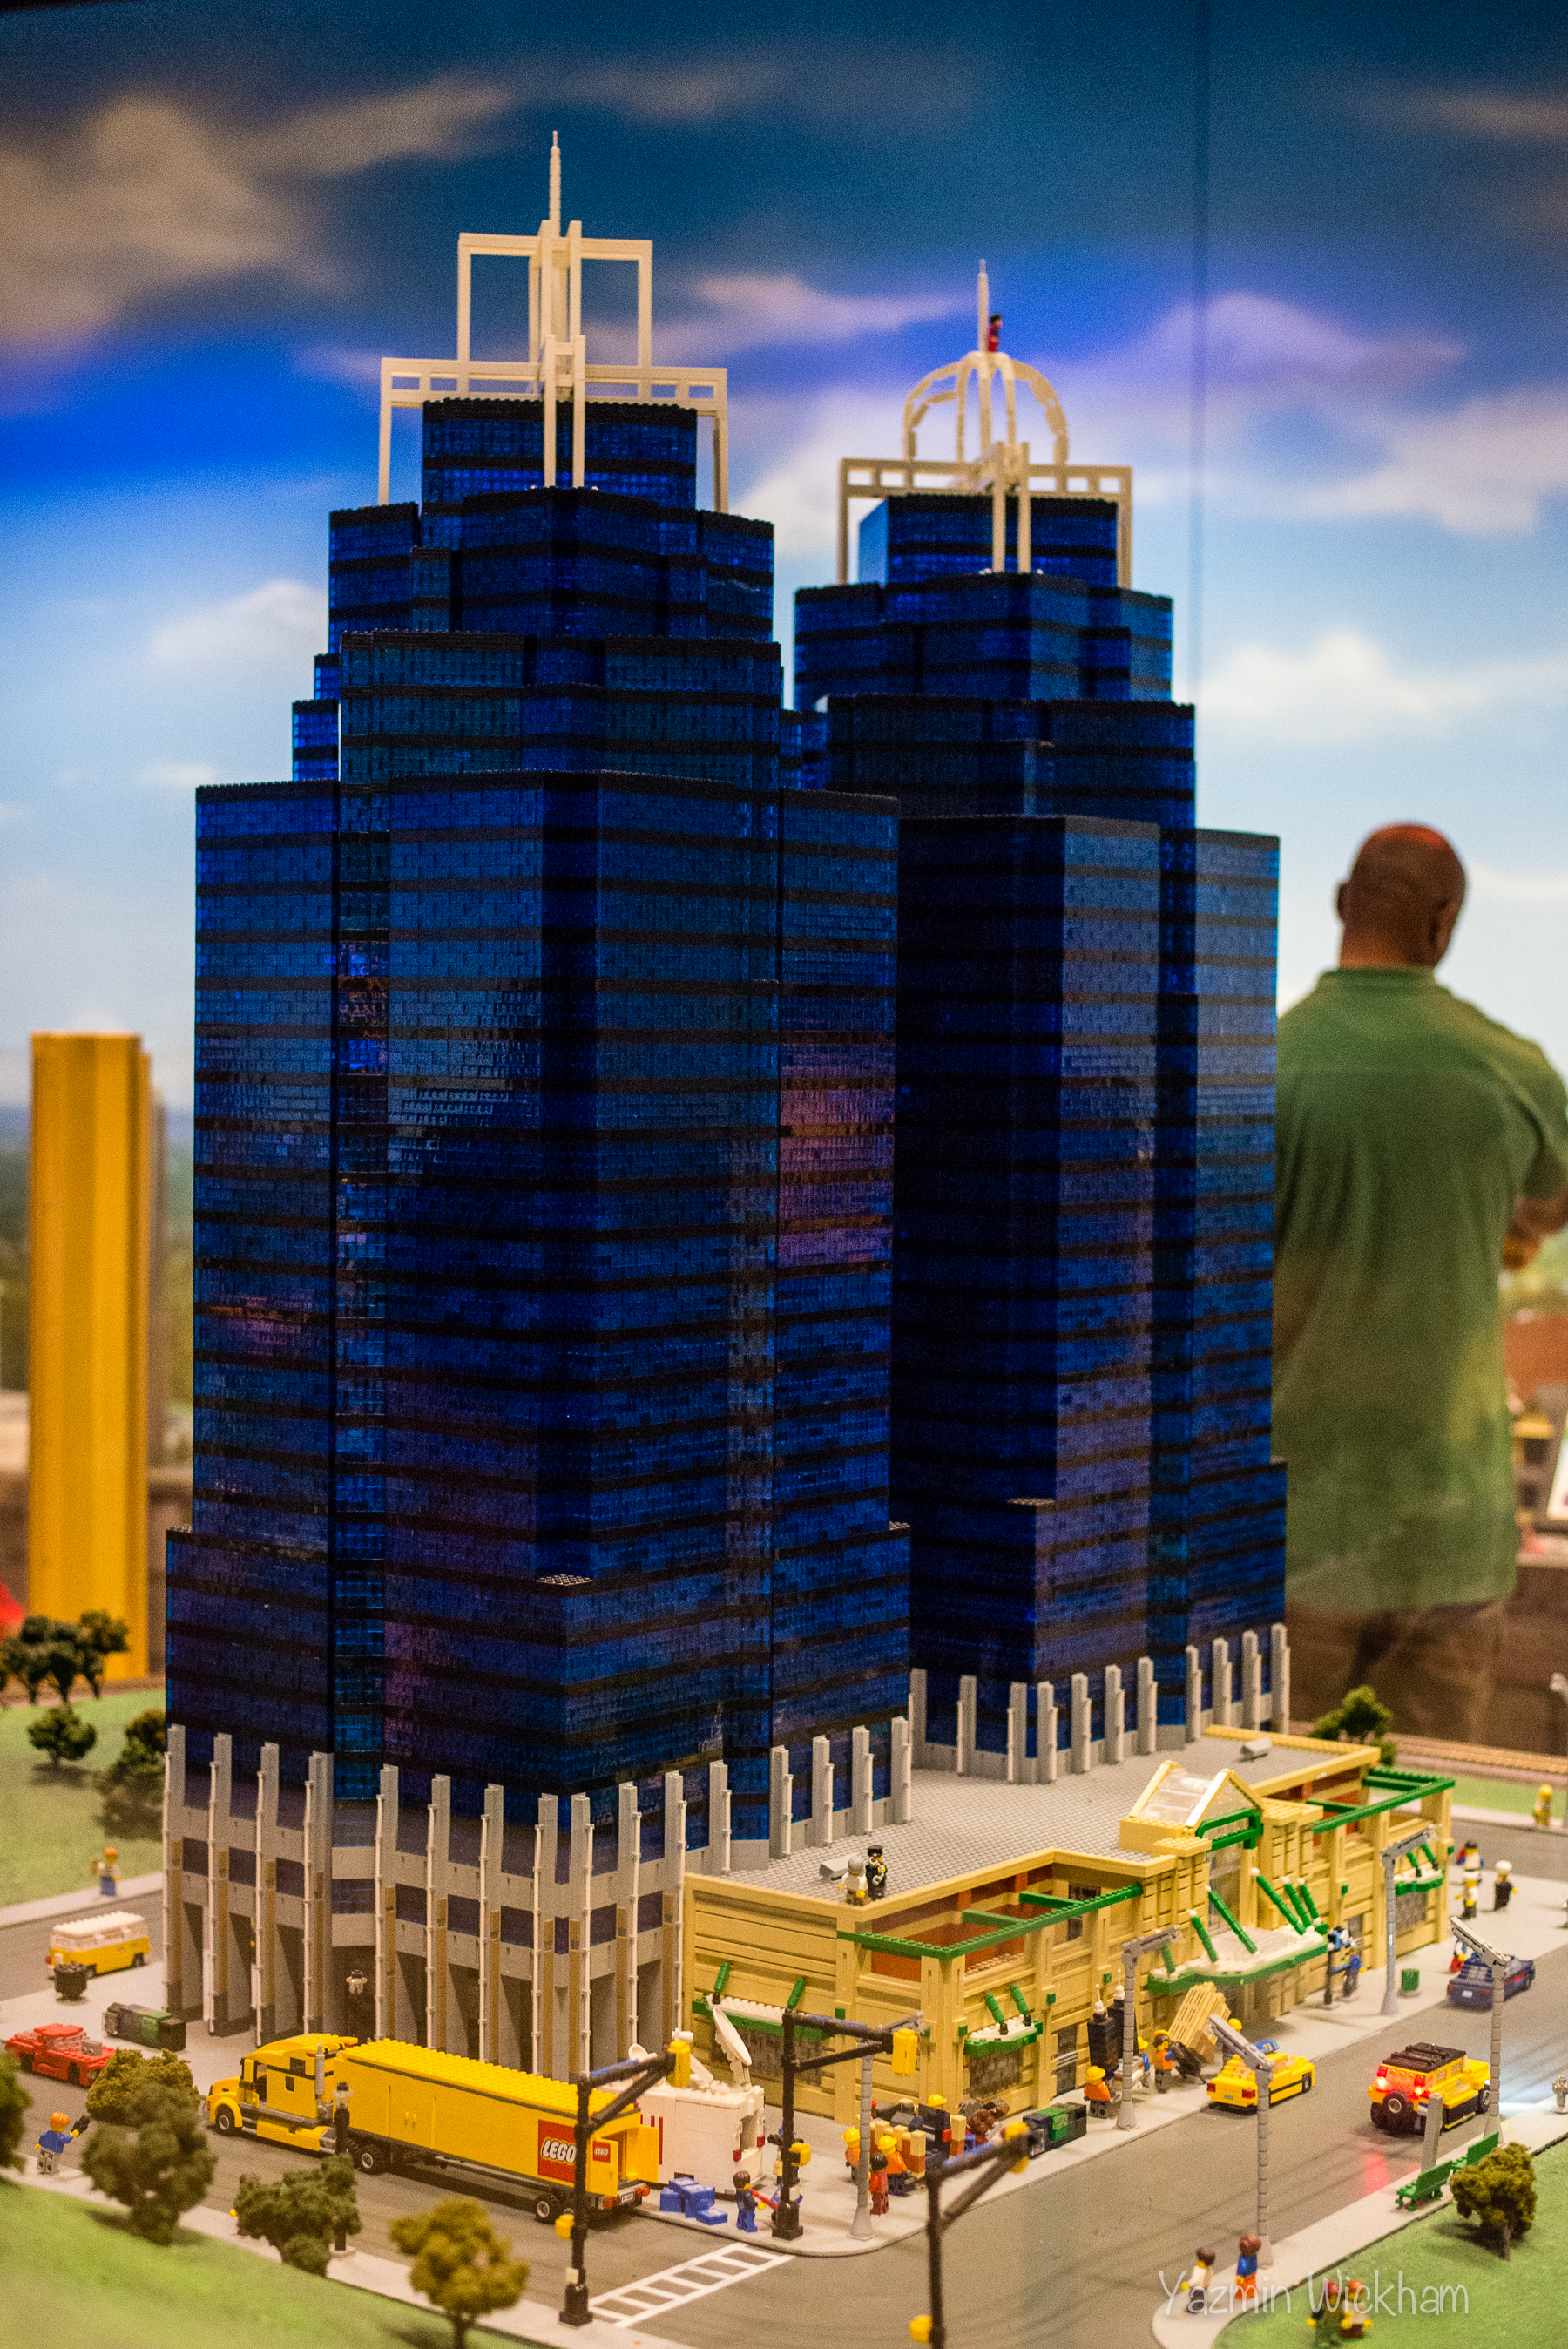 Lego King and Queen Towers